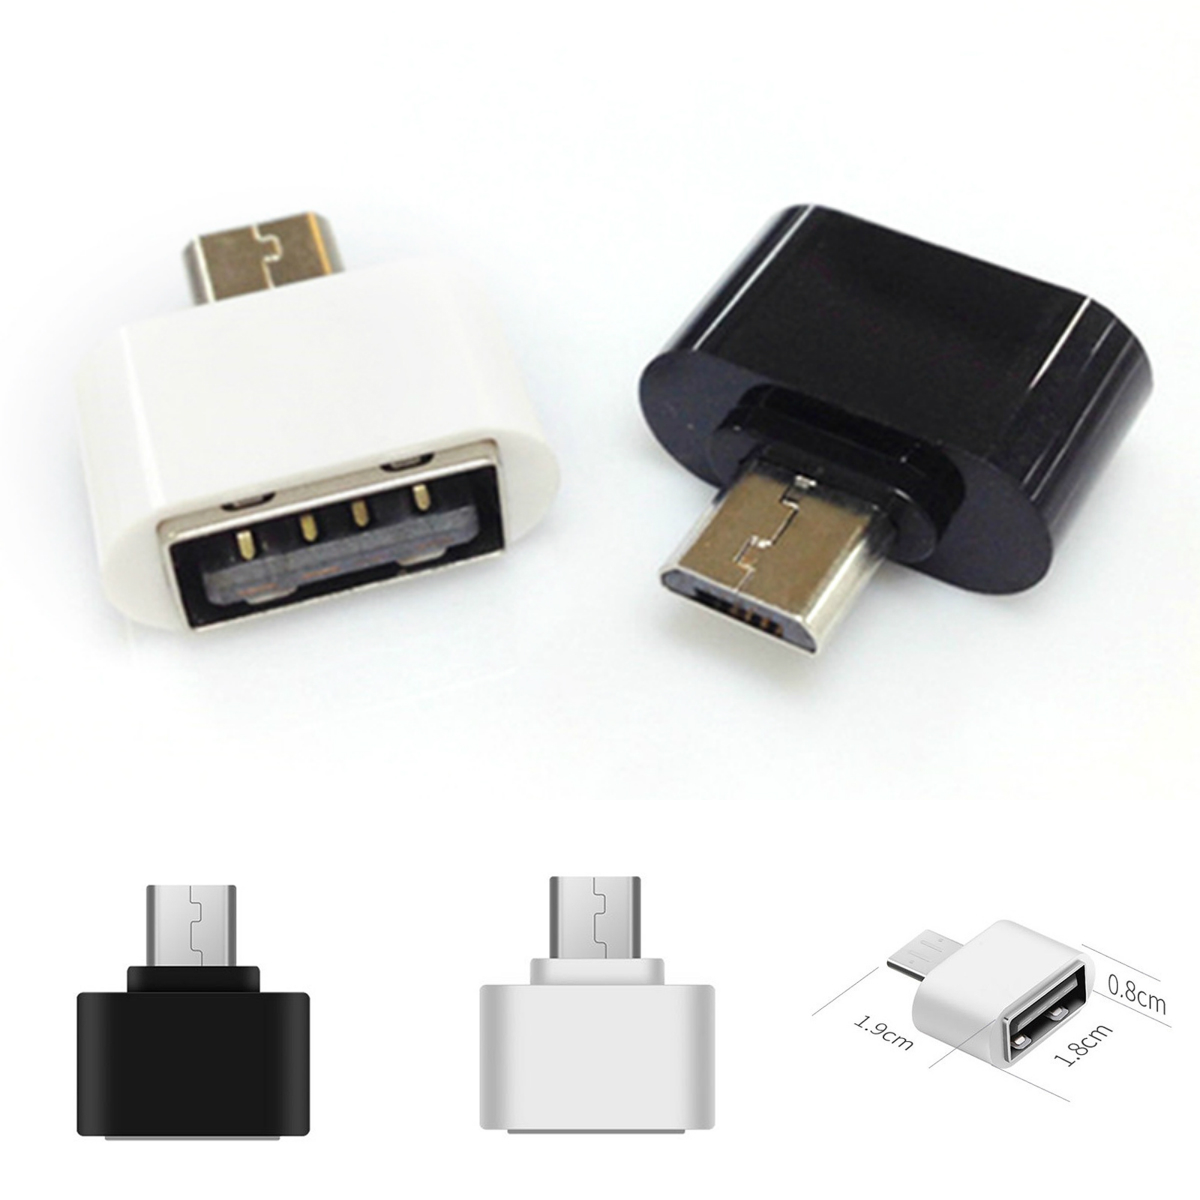 2pcs Portable Useful Micro USB Male To USB 2.0 Female Adapter OTG Converter For Android Tablet PC Cell Phone